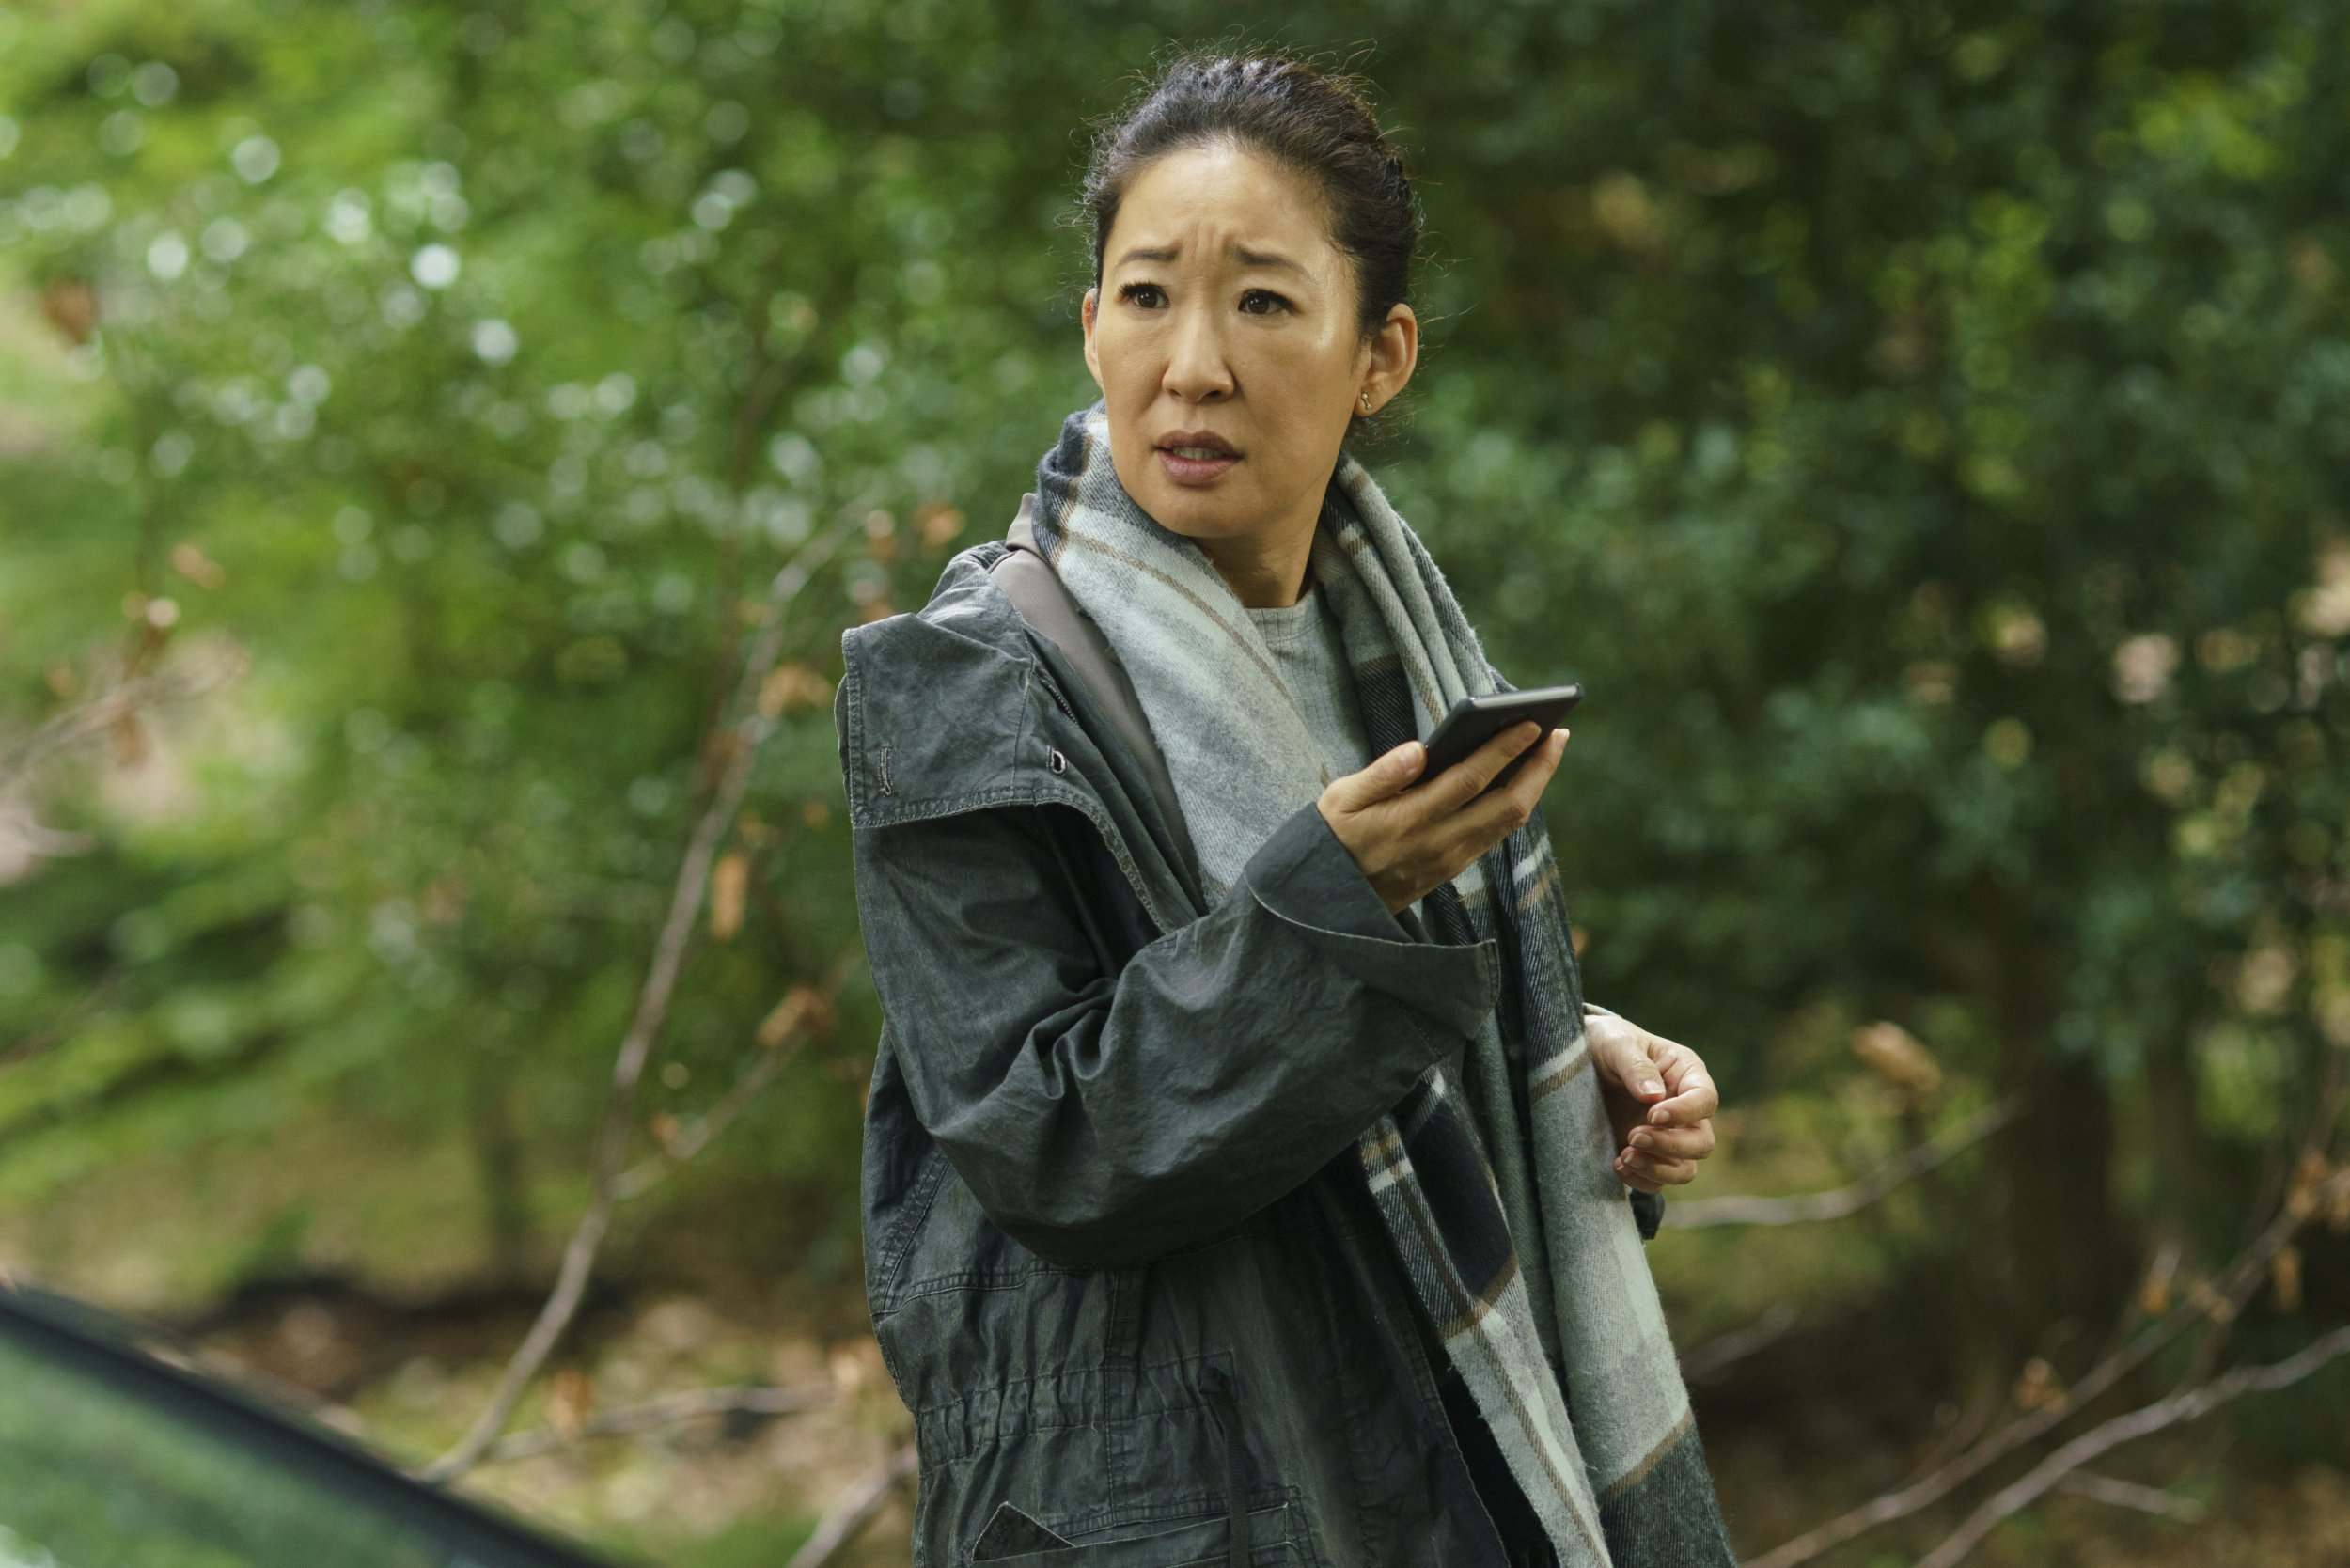 Killing Eve season 2 release date, trailer, cast, plot and how did season 1 end?